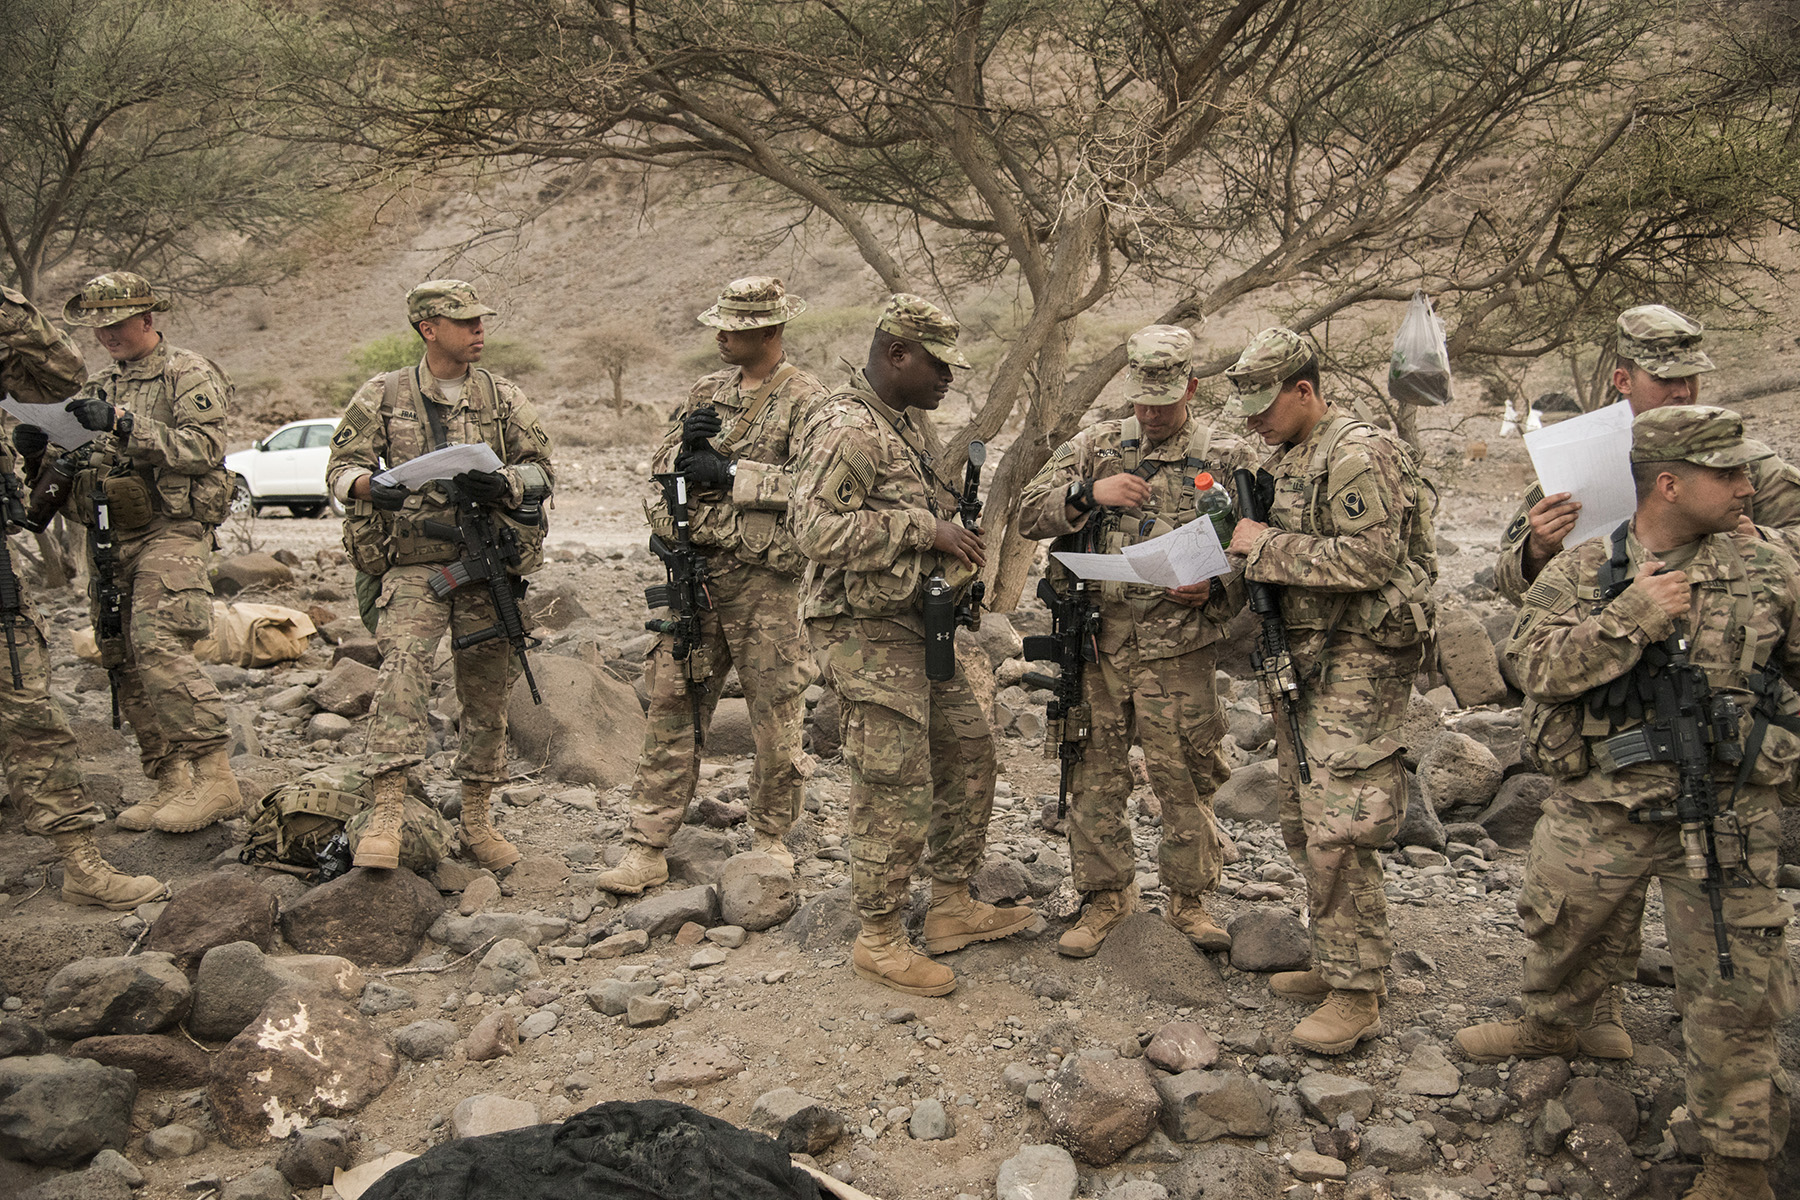 ARTA, DJIBOUTI- U.S. Army soldiers from the Alpha Company, 1st Battalion, 124th Infantry Regiment, receive location points during night land navigation training, Aug. 5, 2016, in Arta, Djibouti. The soldiers completed day and night land navigation training along with mock casualty care, simulating calling for fire support and assembly and disassembly of the M4 carbine rifle. (U.S. Air Force photo by Staff Sgt. Tiffany DeNault)